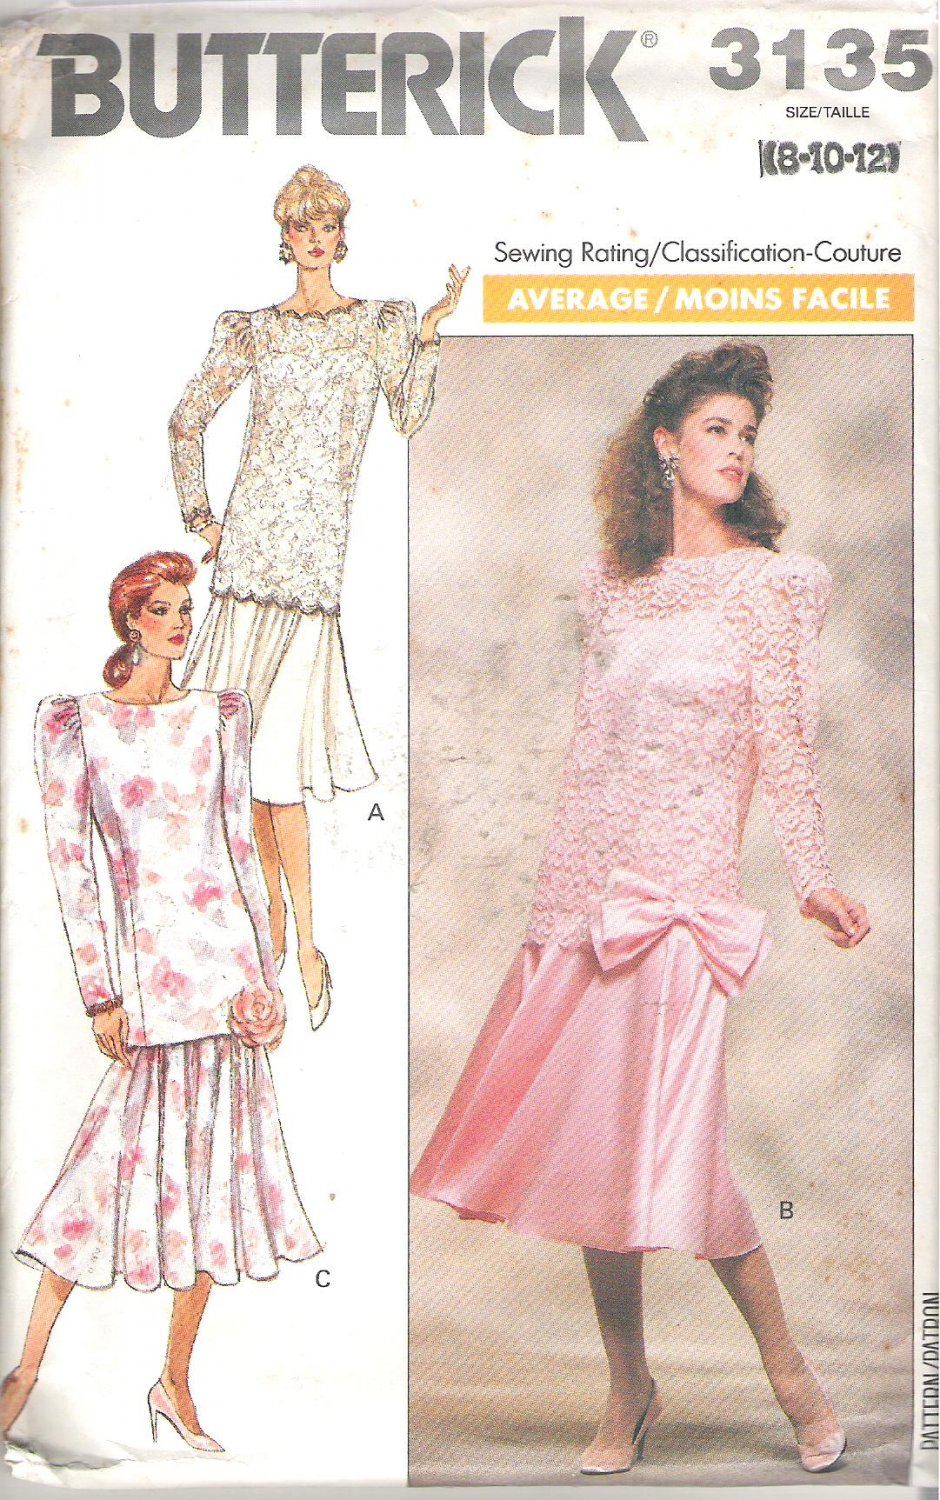 Butterick 3135 (1989) Pattern Misses/Petite Shoulder Strap Dress Top Overlay Size 8-12 Cut to 12